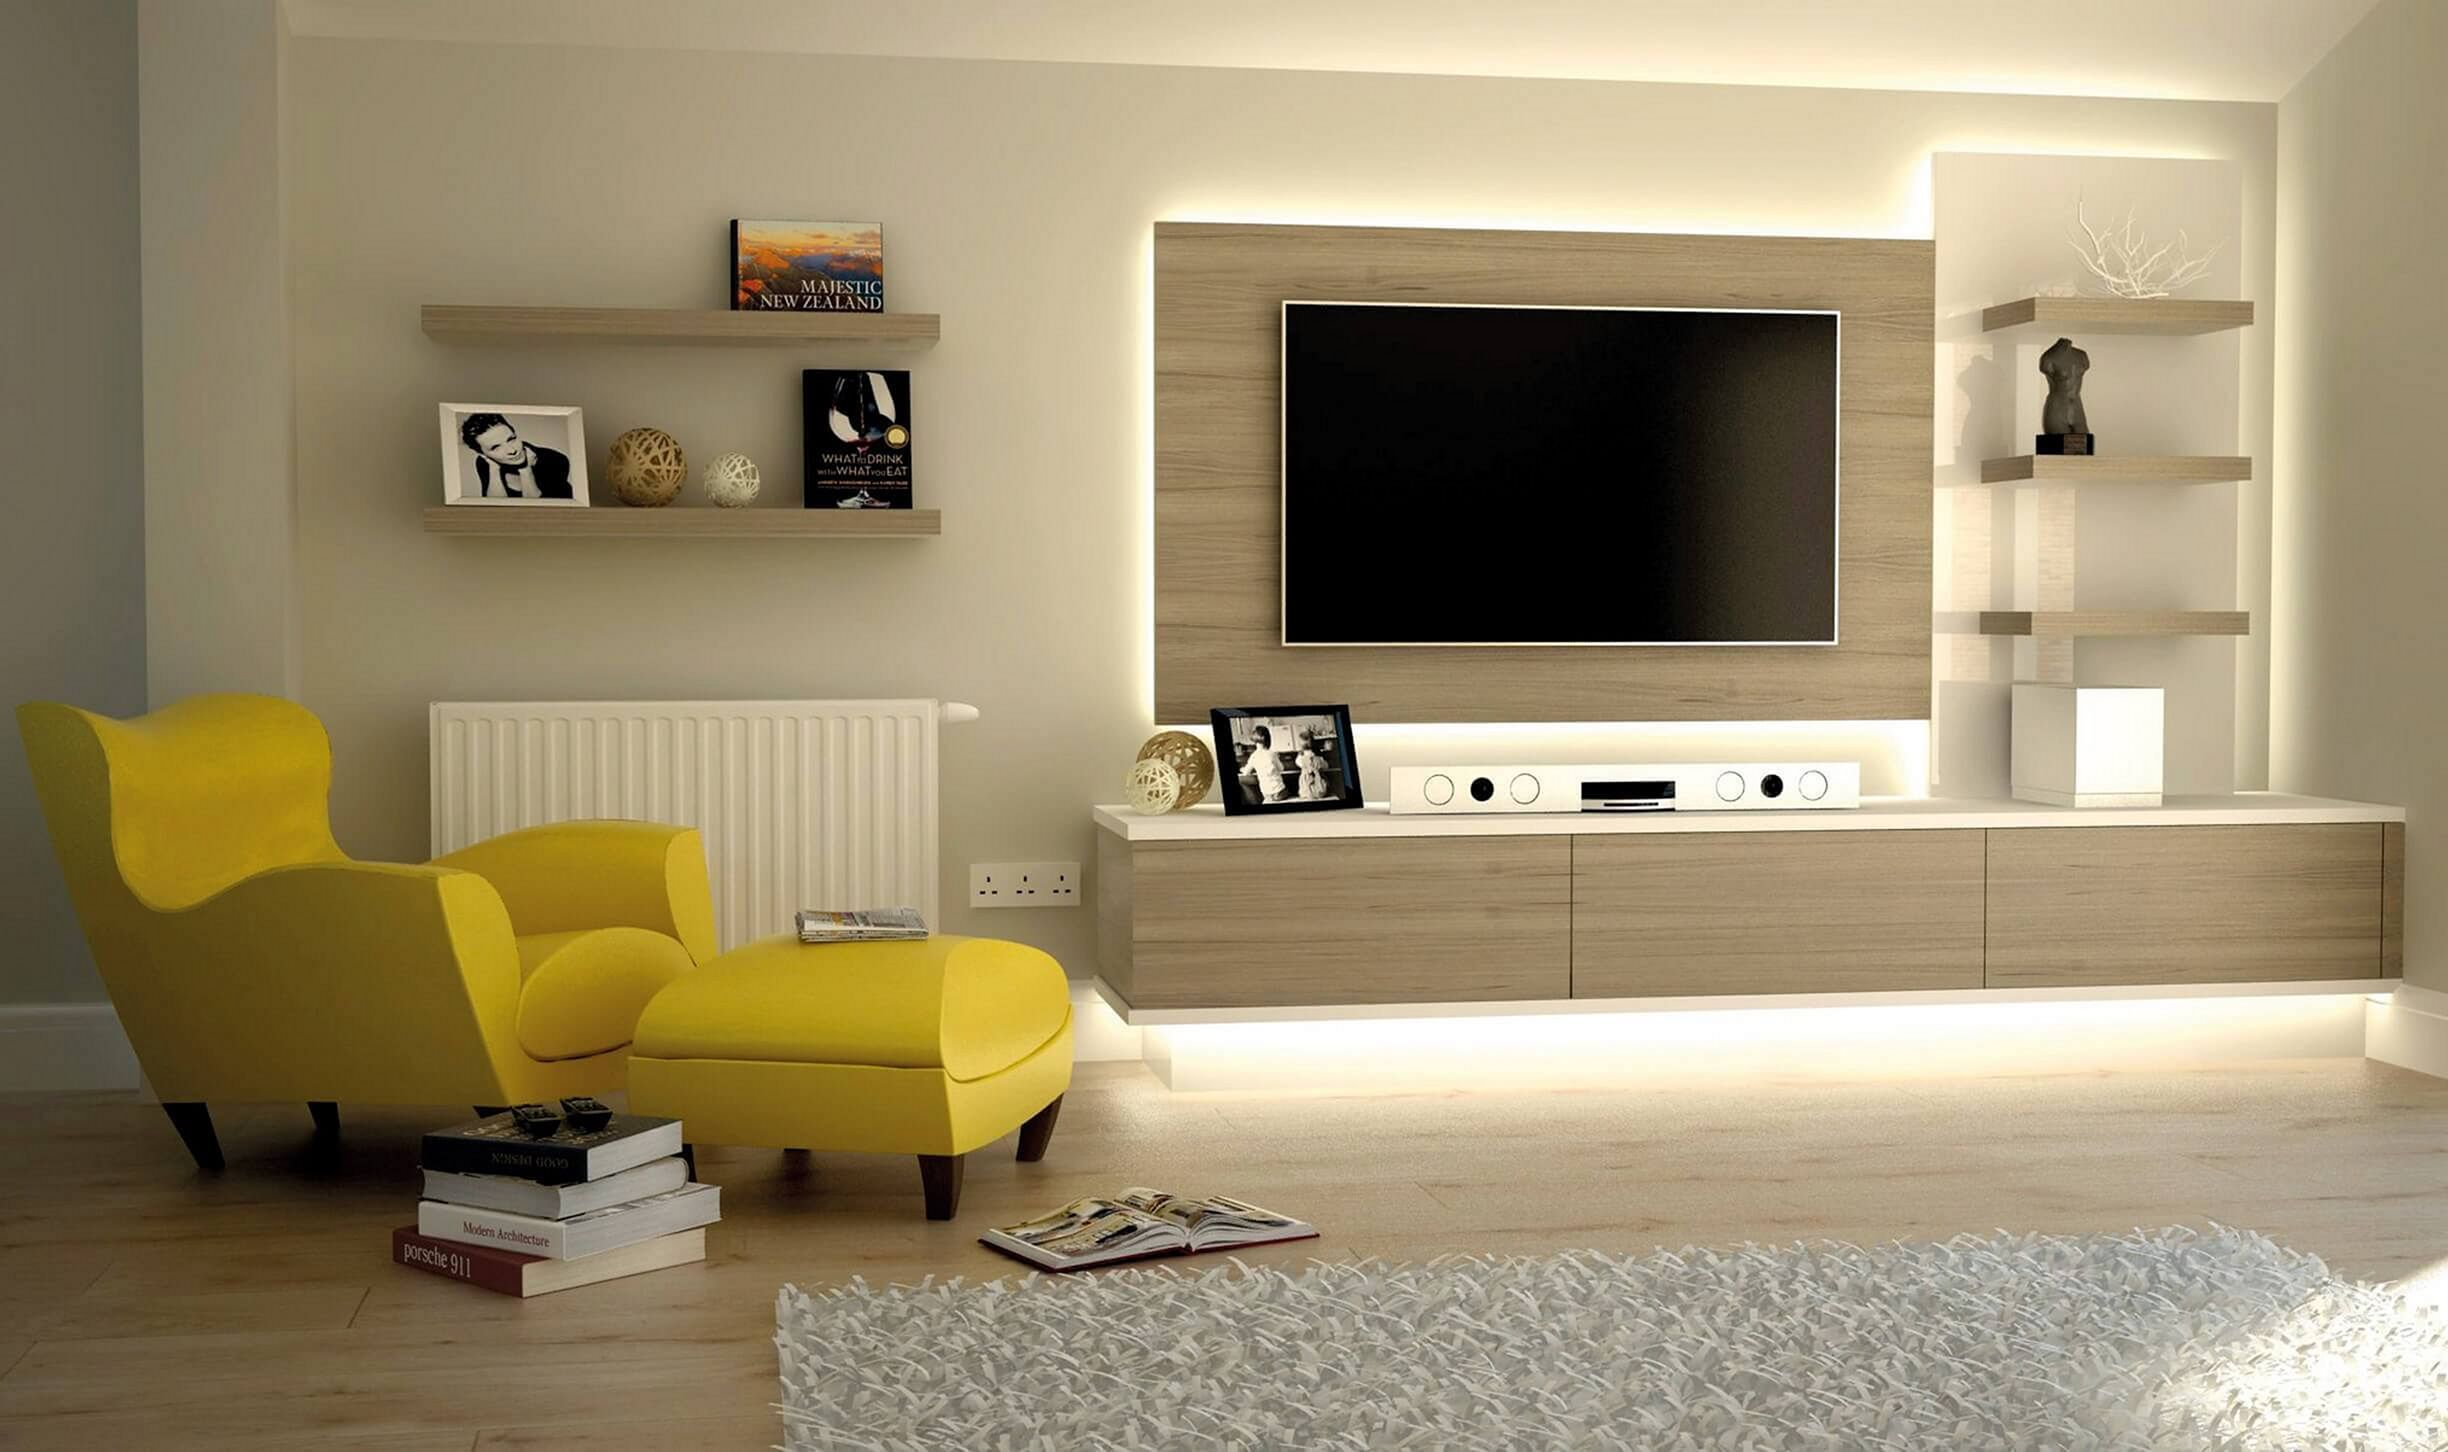 Amazing TV Wall Design Ideas To Enhance Your Home Style in ...